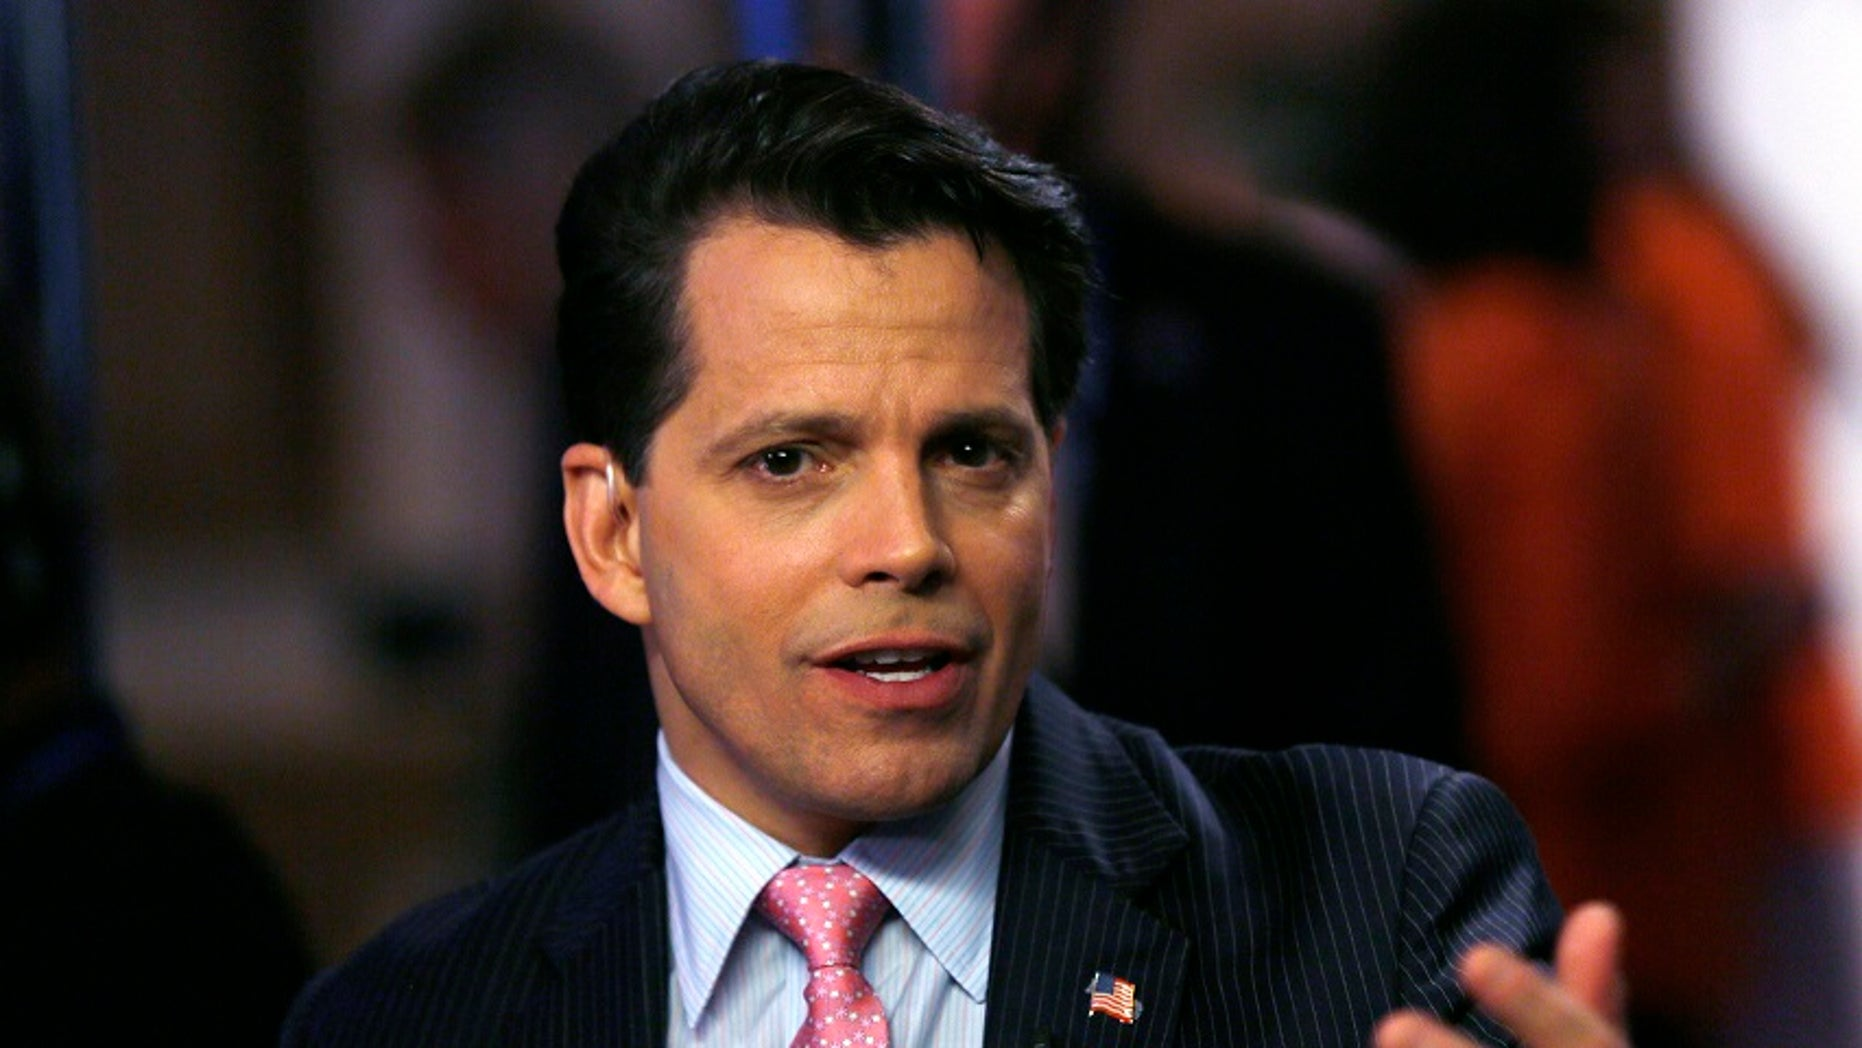 Anthony Scaramucci, co-managing partner of investment firm SkyBridge Capital, talks to a reporter at the annual Skybridge Alternatives Conference in Las Vegas May 8, 2013. REUTERS/Rick Wilking (UNITED STATES - Tags: BUSINESS) - RTXZF7Z